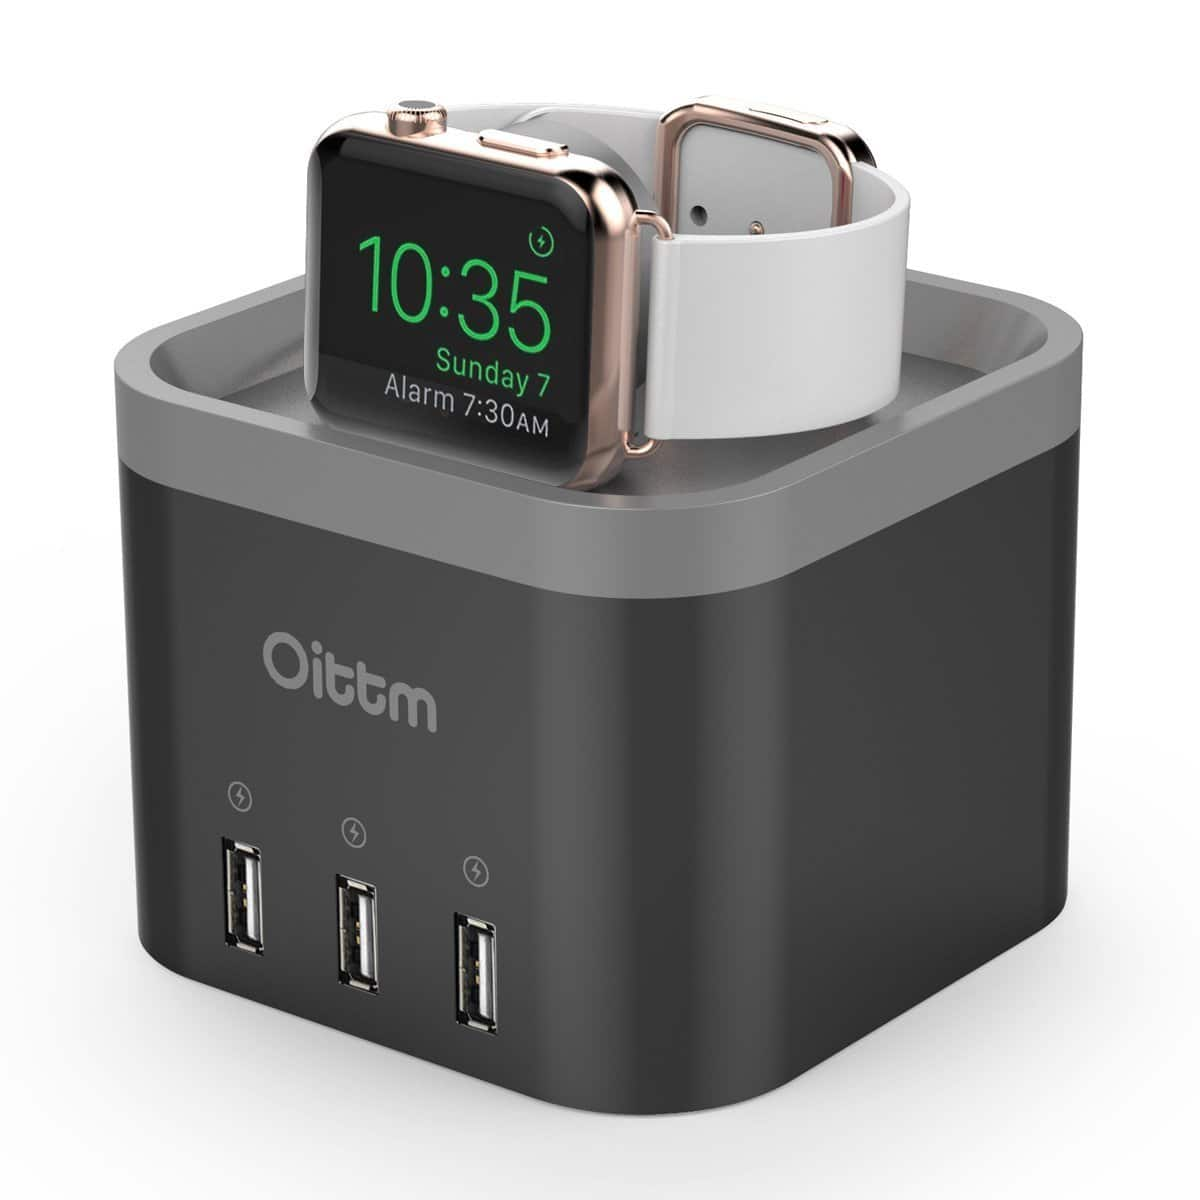 Oittm 4 Ports Desktop Smart Charging Station Nightstand Apple Watch Charger Dock - $21.99 AC+FS with prime or FSSS @Amazon